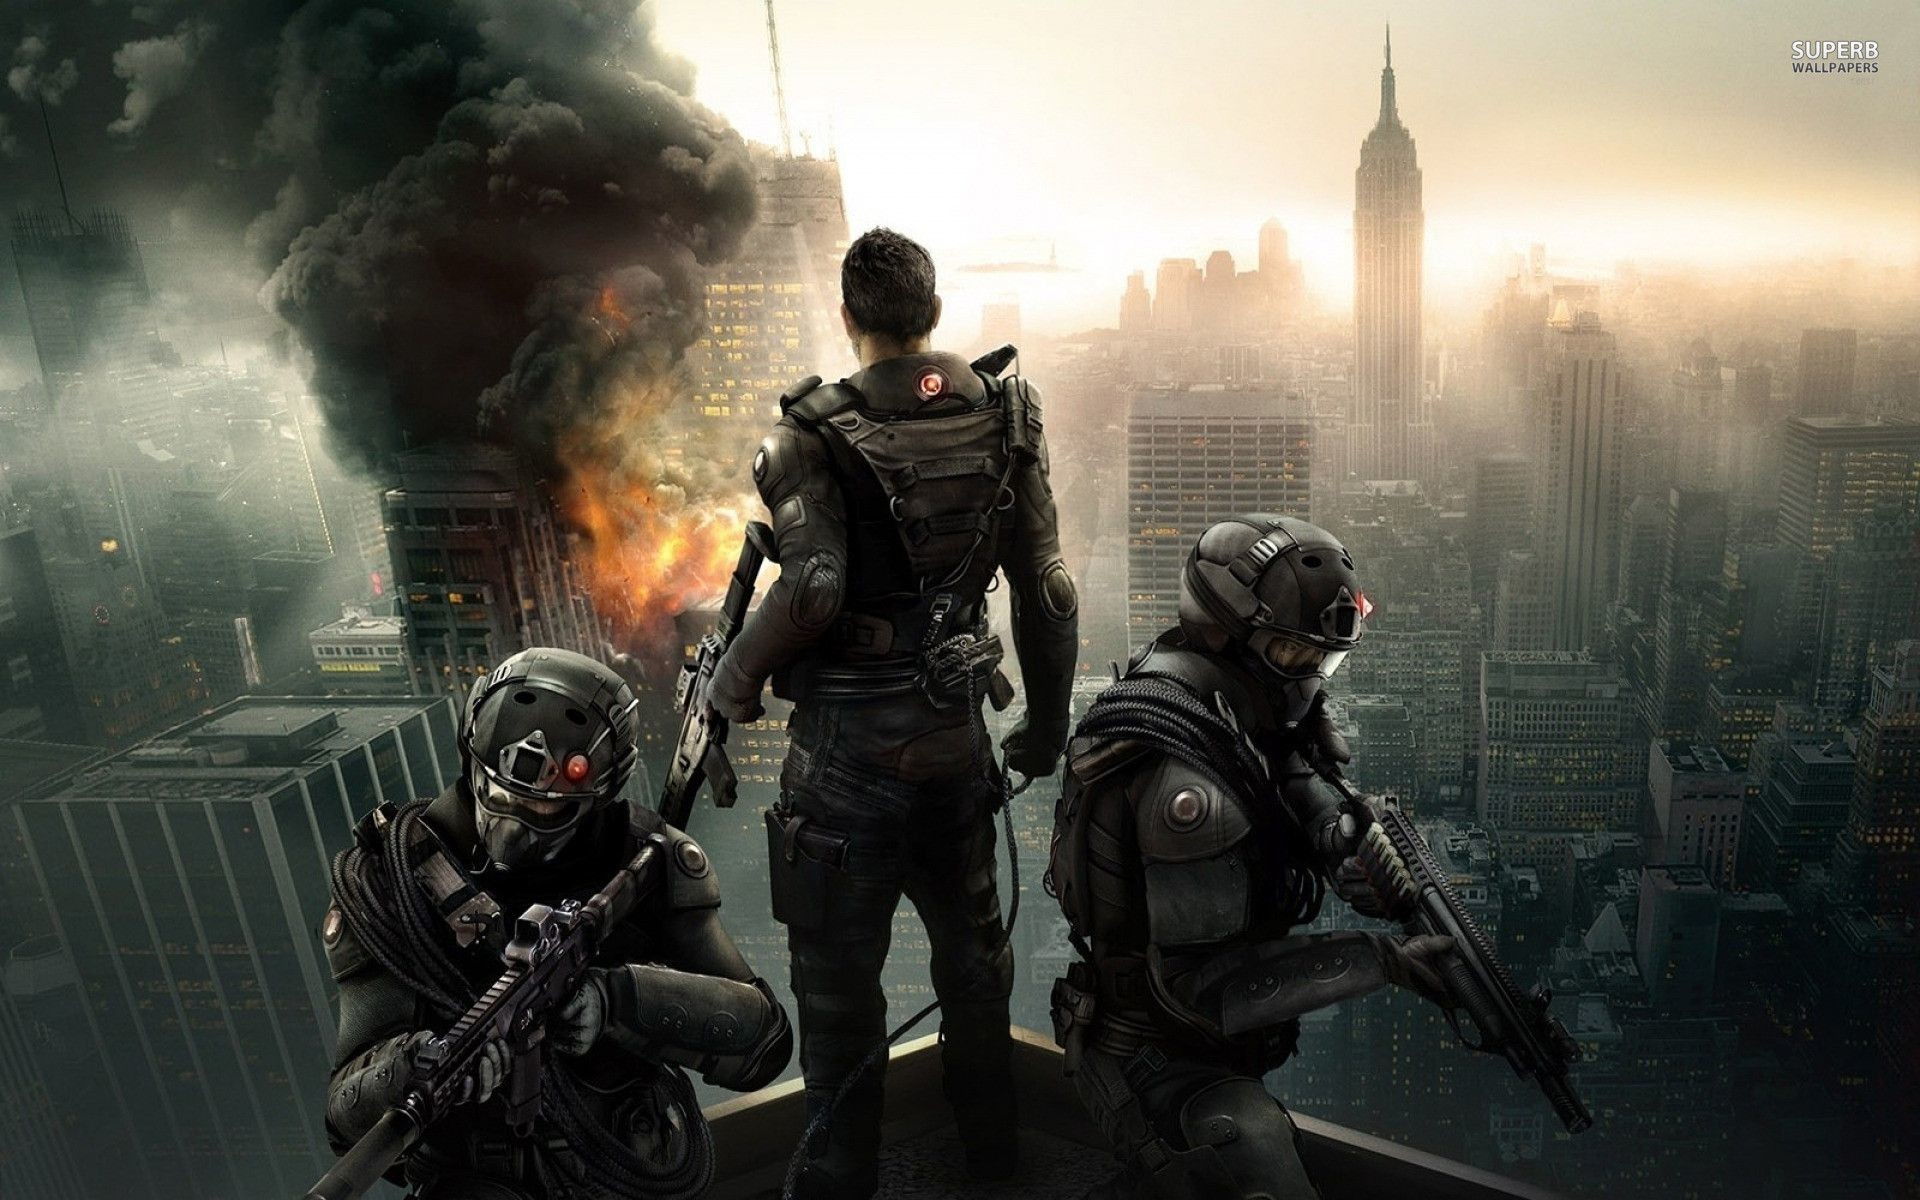 THE DIVISION Tom Clancys   HD Desktop Wallpapers   Pinterest   Division